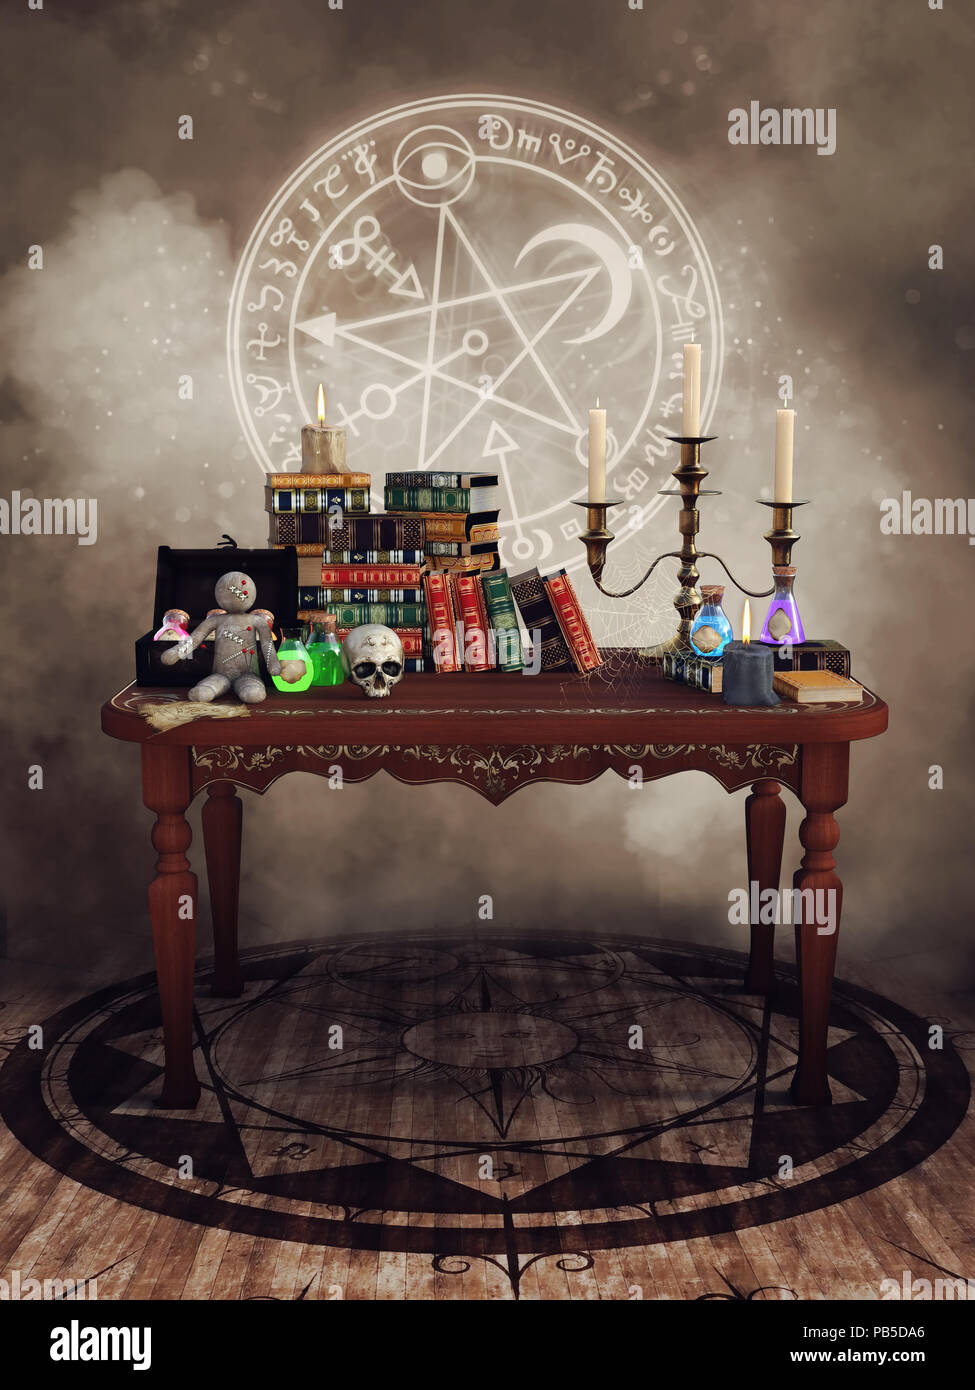 Fantasy Table With Magic Books Potions Voodoo Doll Candles And